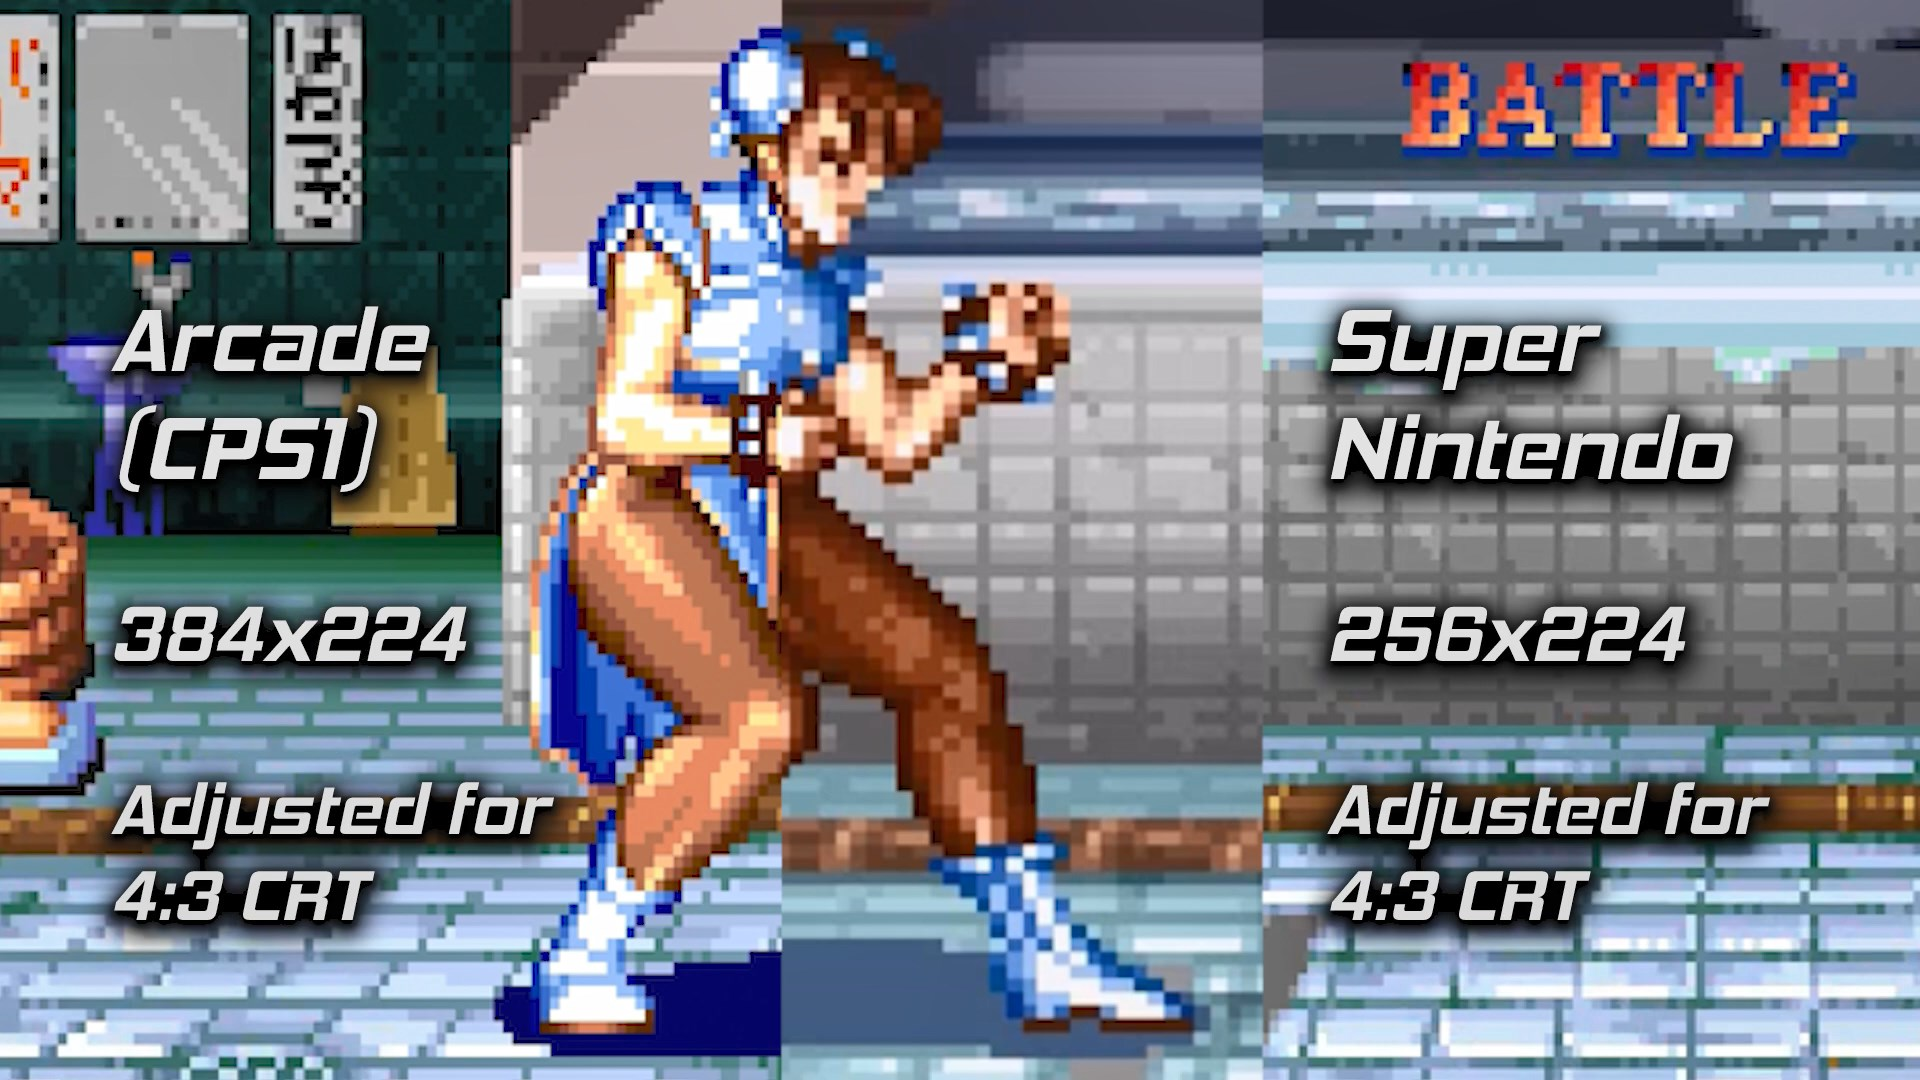 Street Fighter Arcade Aspect Ratio